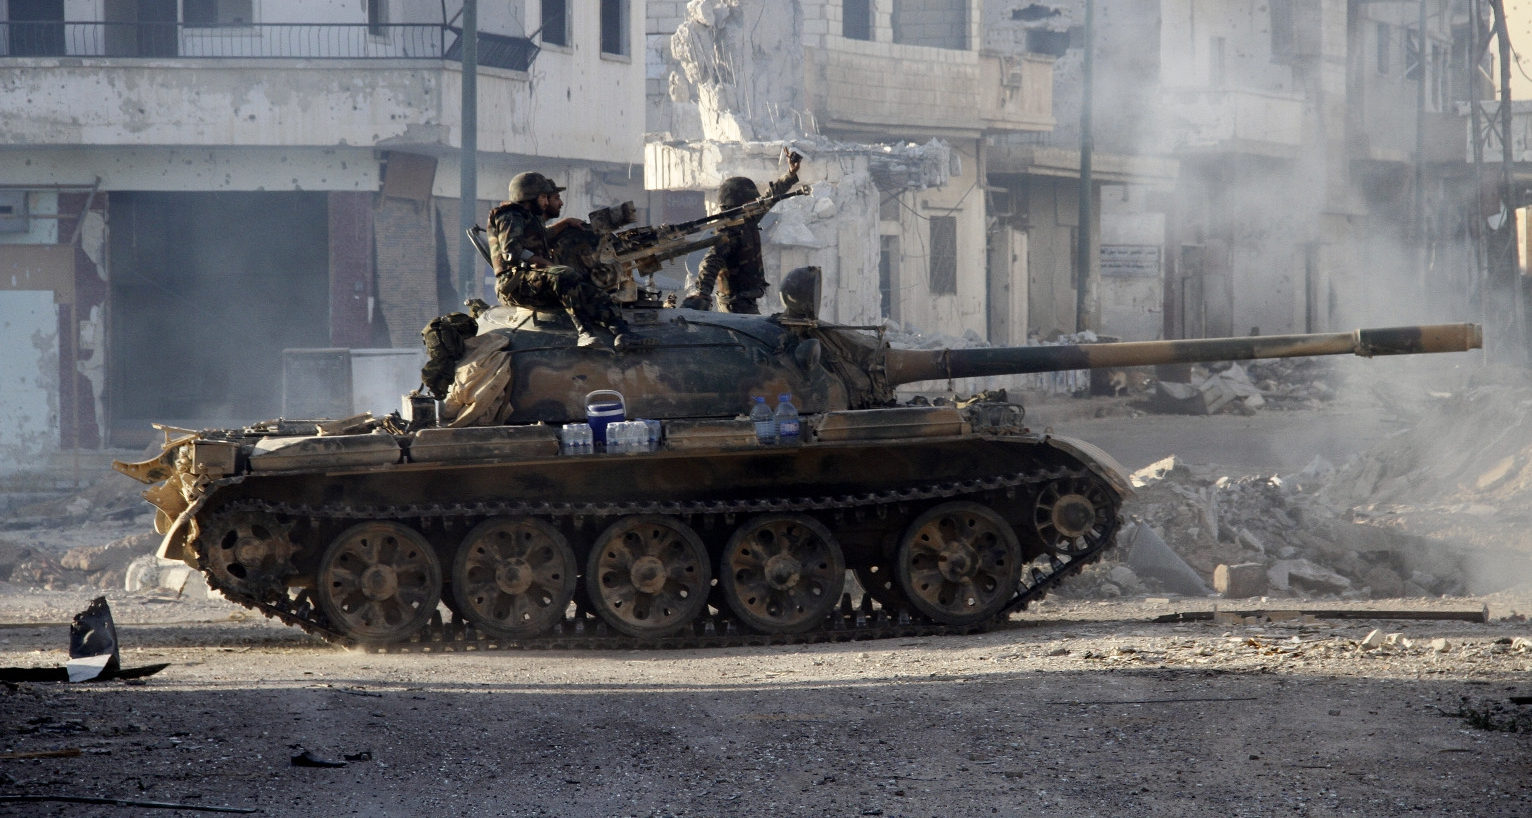 religious wars, tank, wars and rumors of wars, military history, Syrian Civil War, War in Syria, Assad